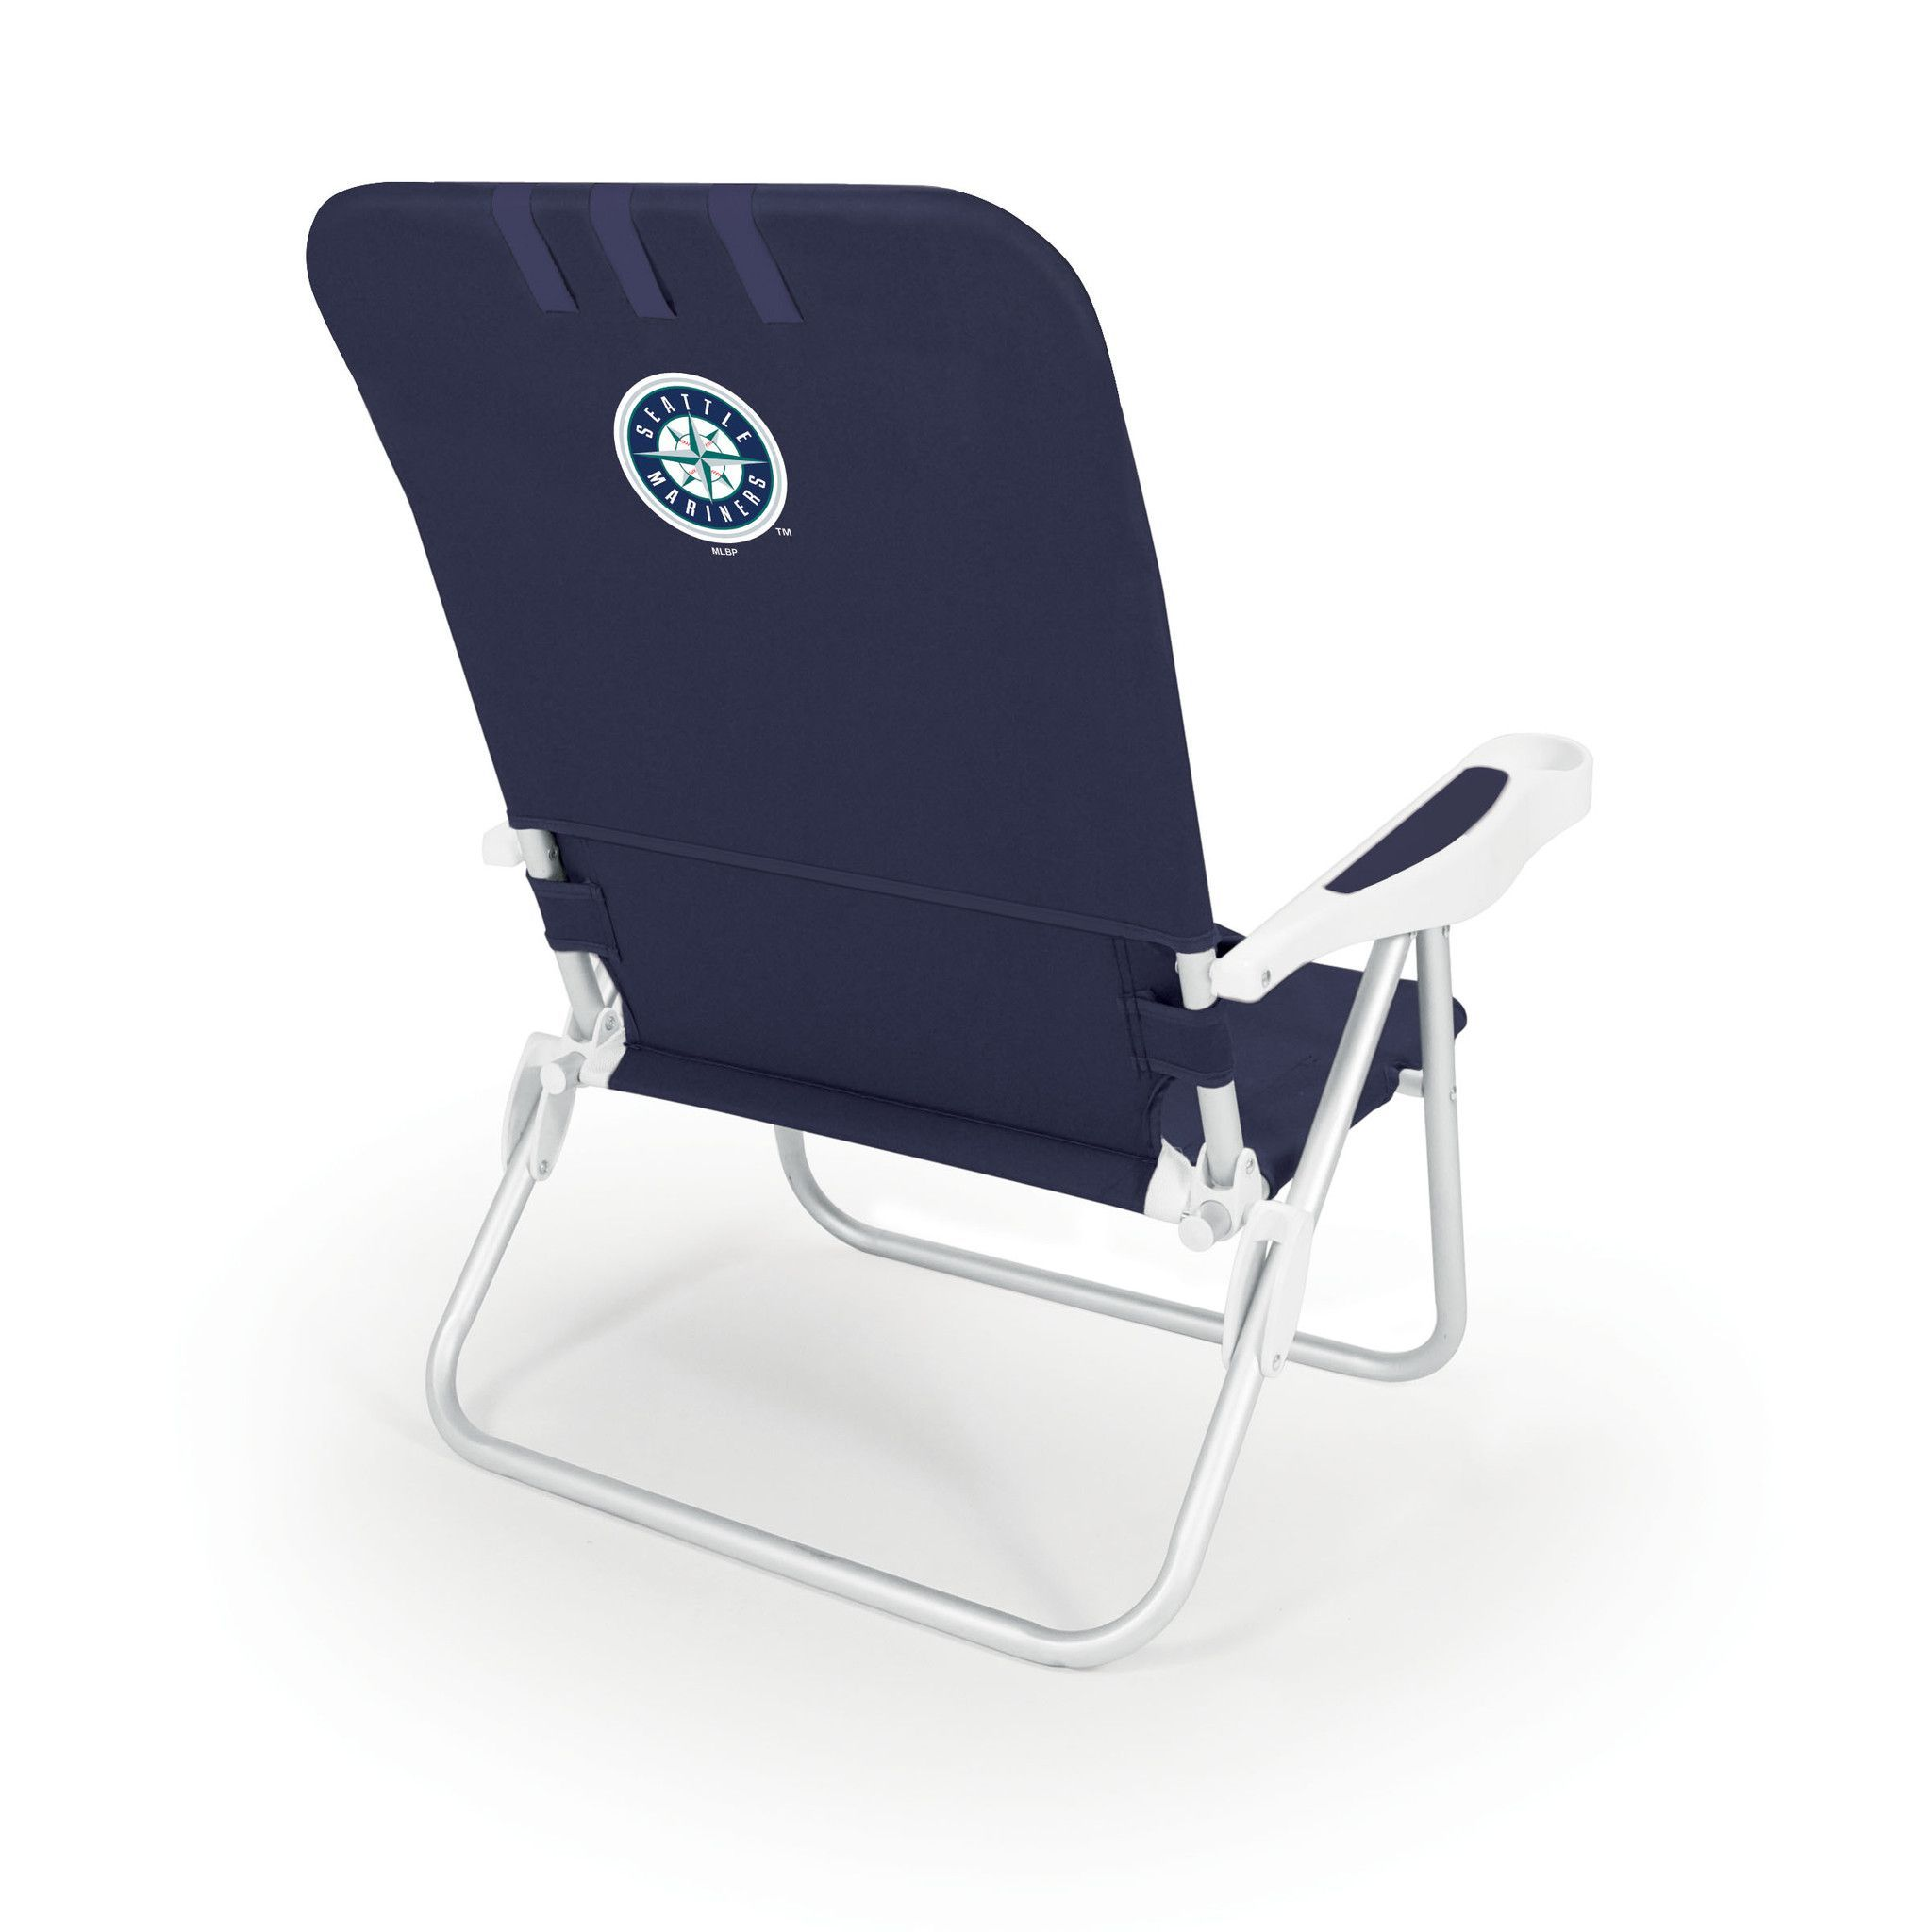 The Seattle Mariners Monaco Beach Chair by Picnic Time